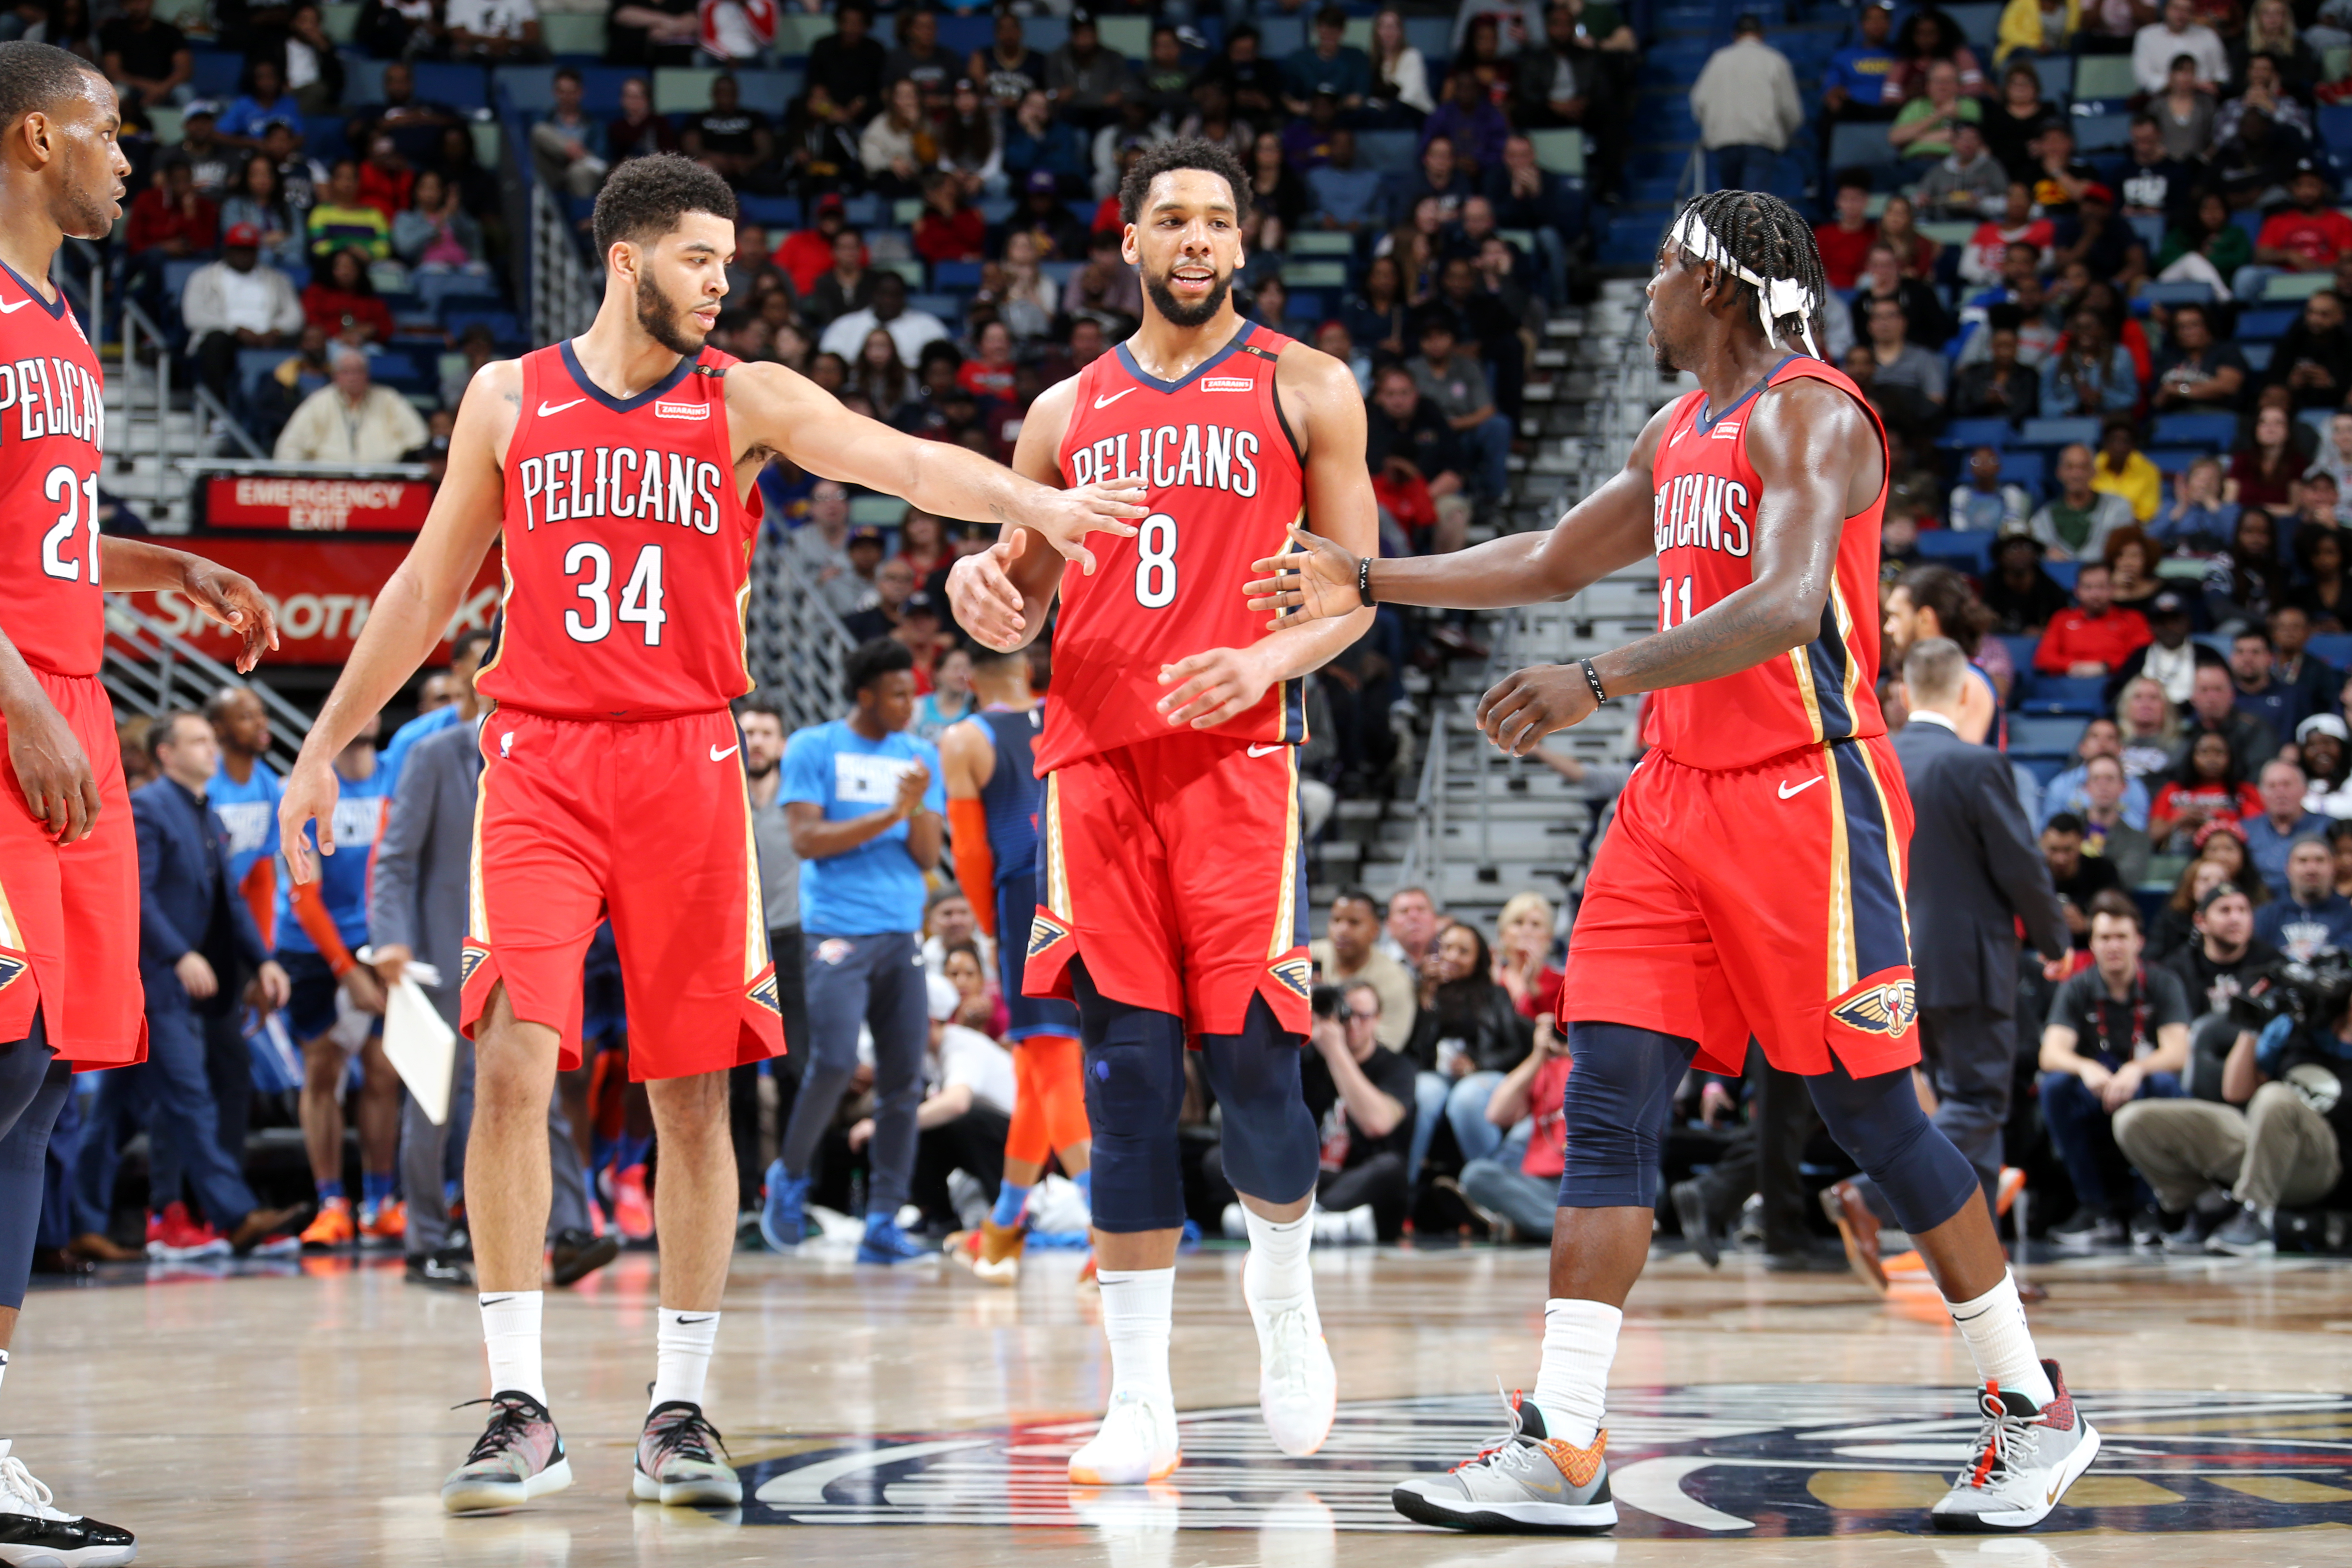 outlet store 15456 5d8d1 Jrue Holiday loves playing with New Orleans Pelicans ...